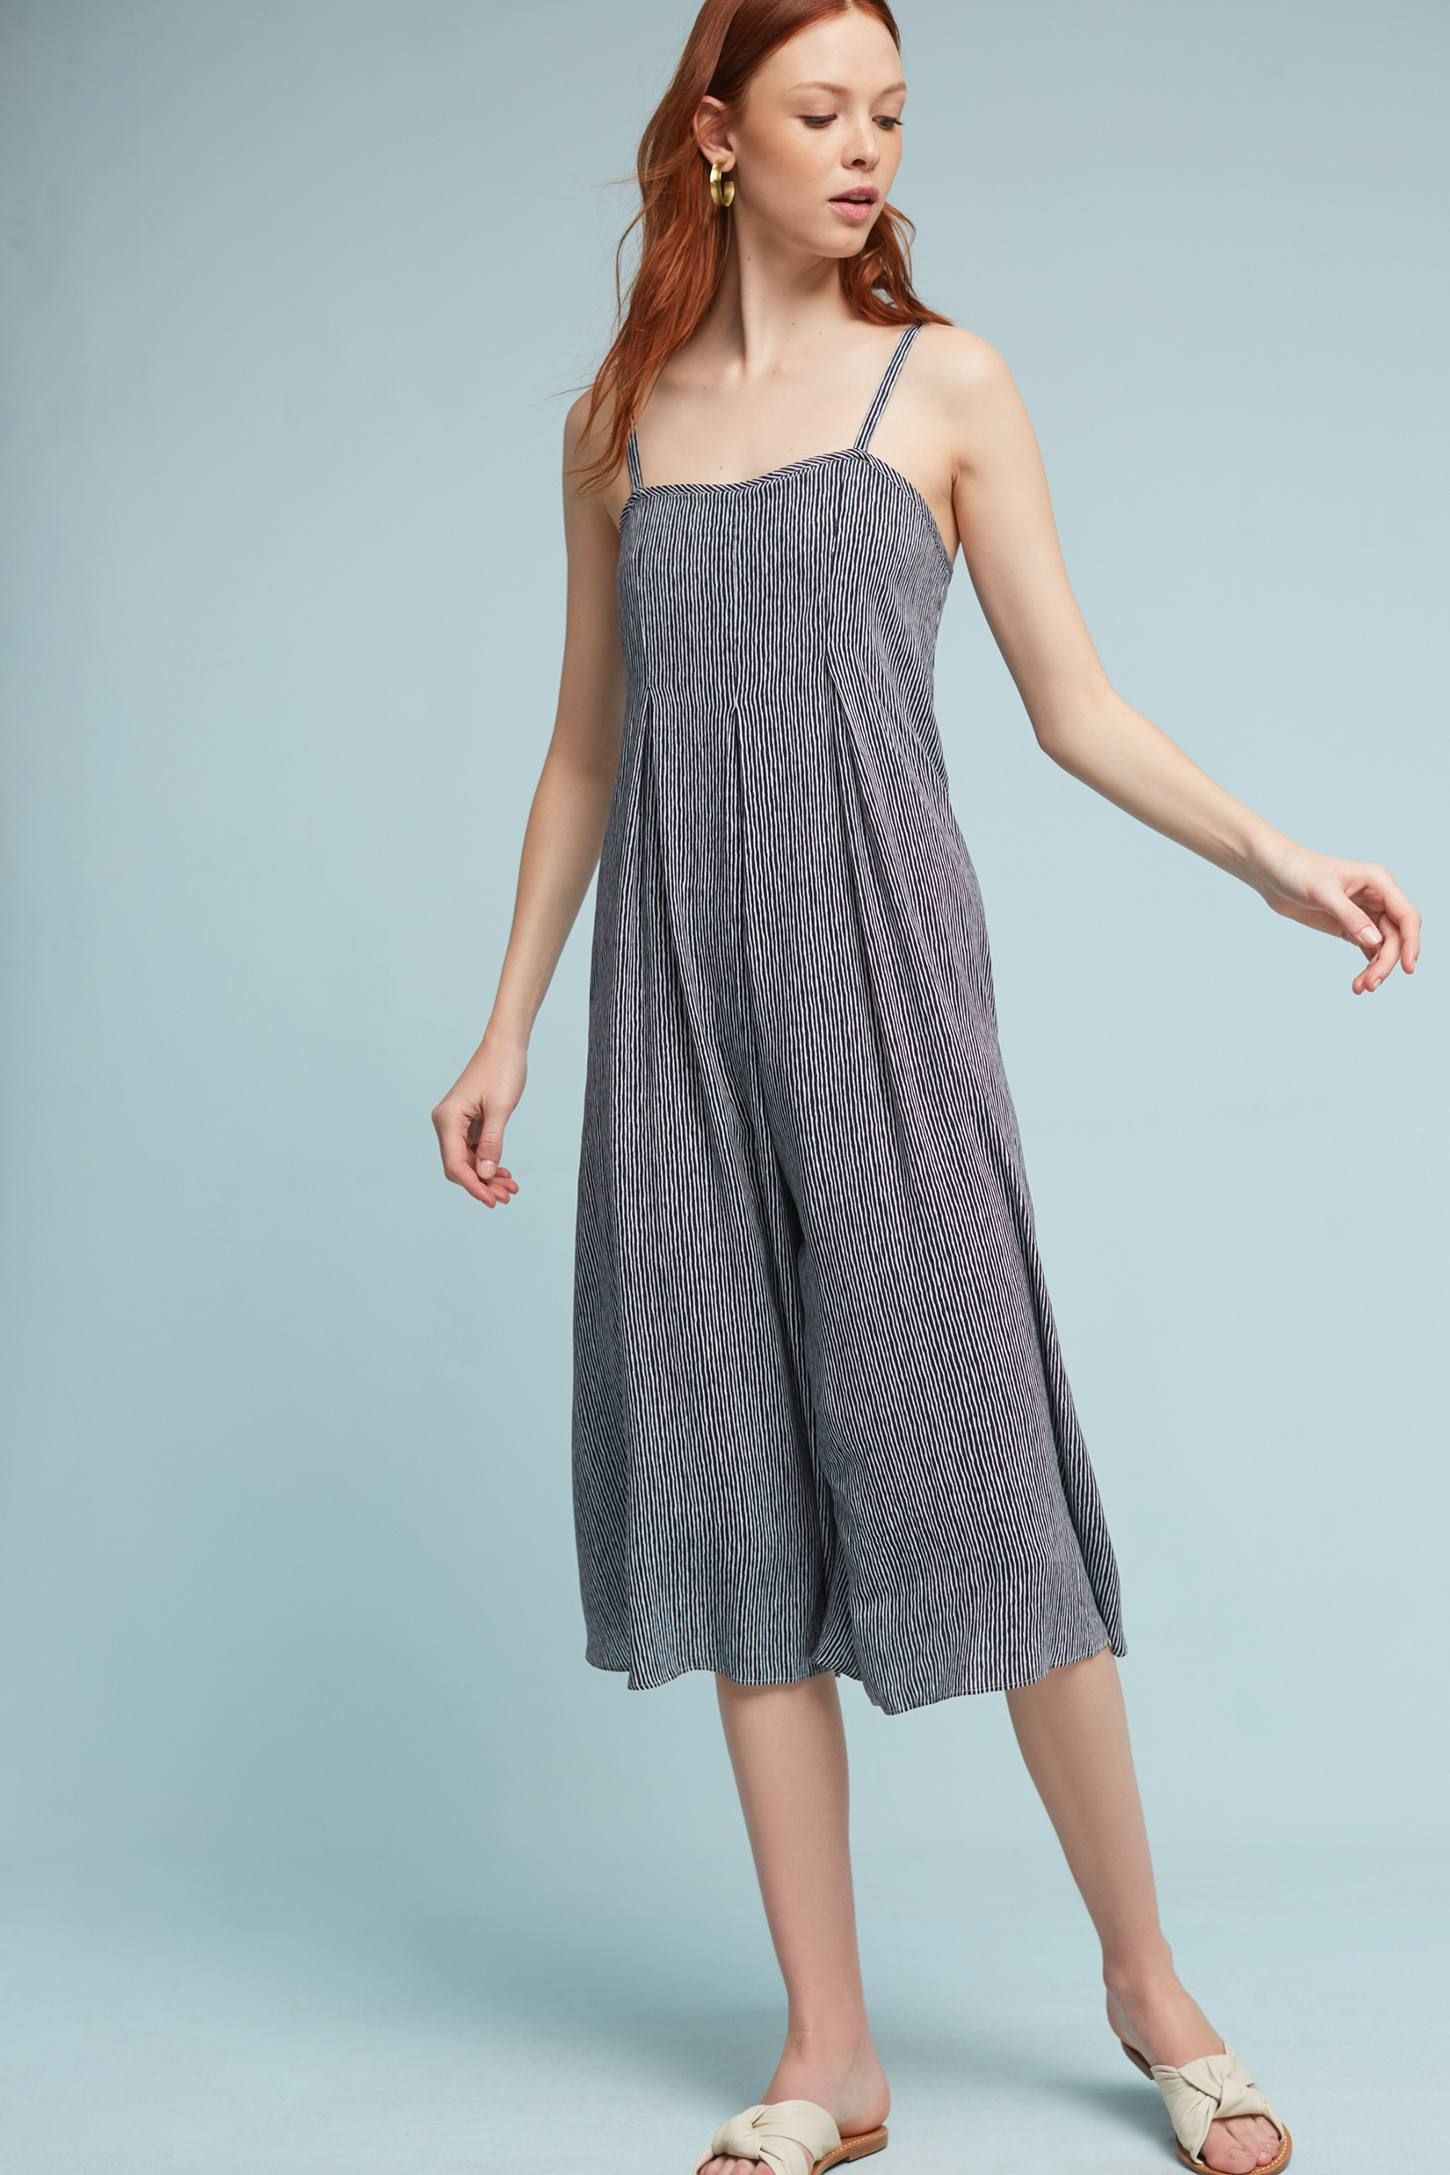 b54a905e21a Shop the Faye Striped Jumpsuit and more Anthropologie at Anthropologie  today. Read customer reviews